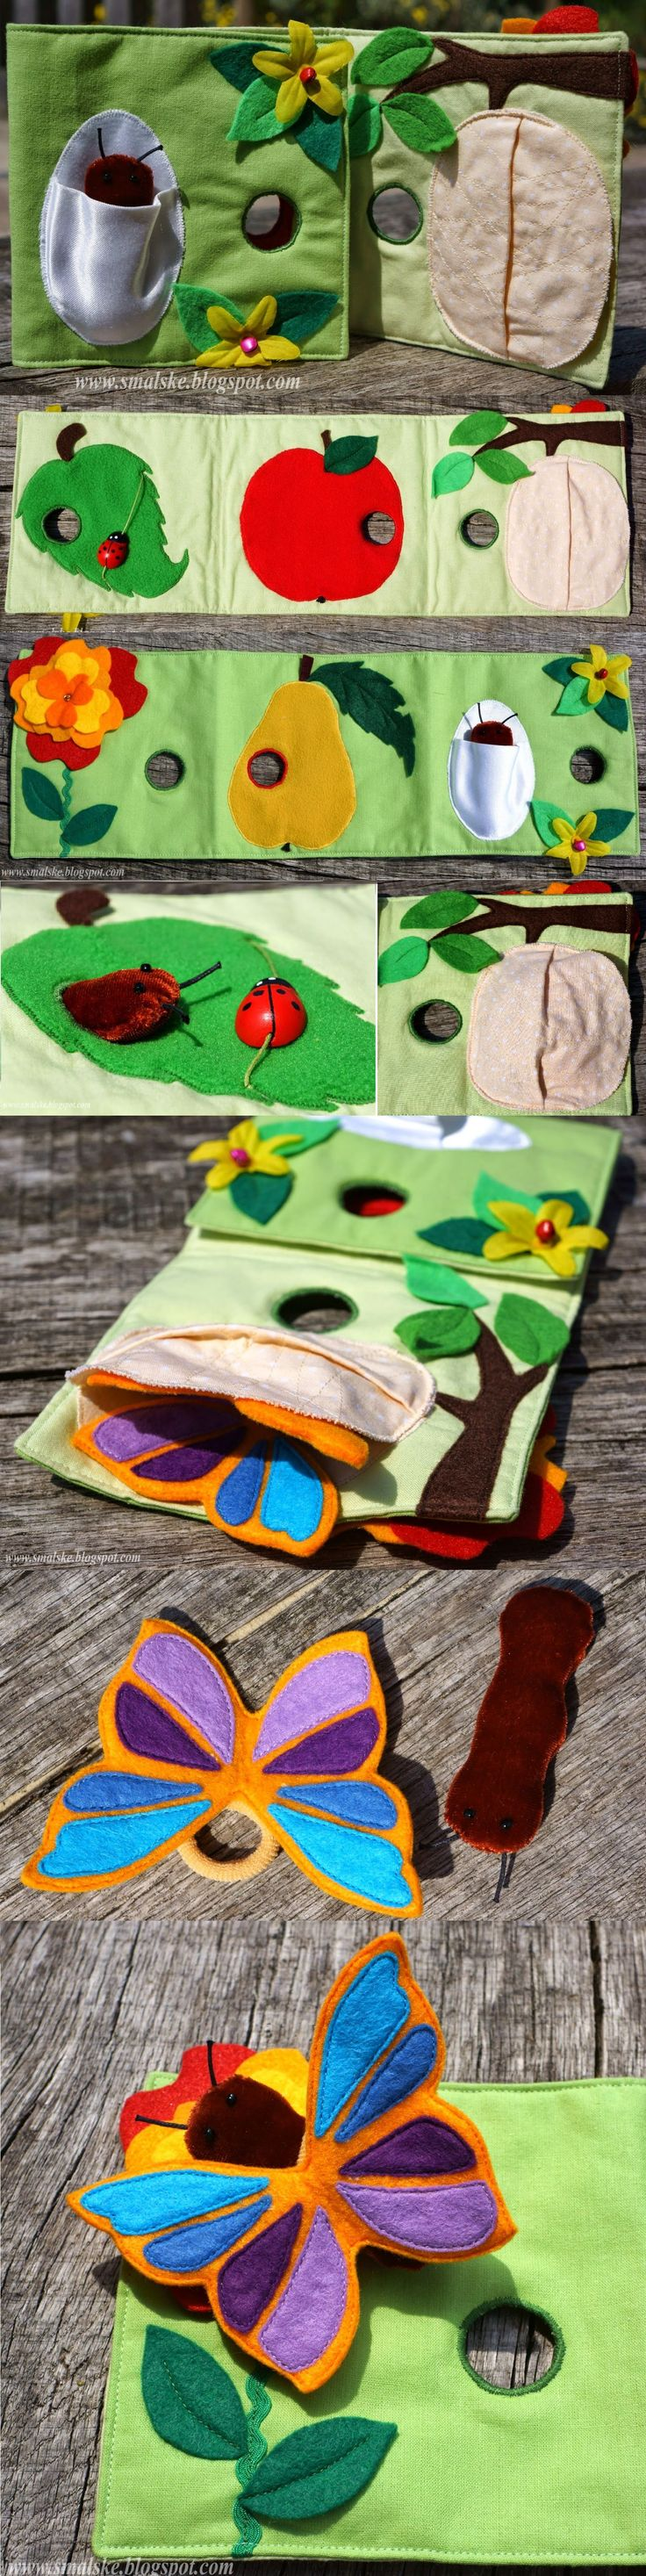 Hungry Caterpillar Quiet Book - by What is Olga Doing http://www.smalske.blogspot.ca/search/label/quiet%20book